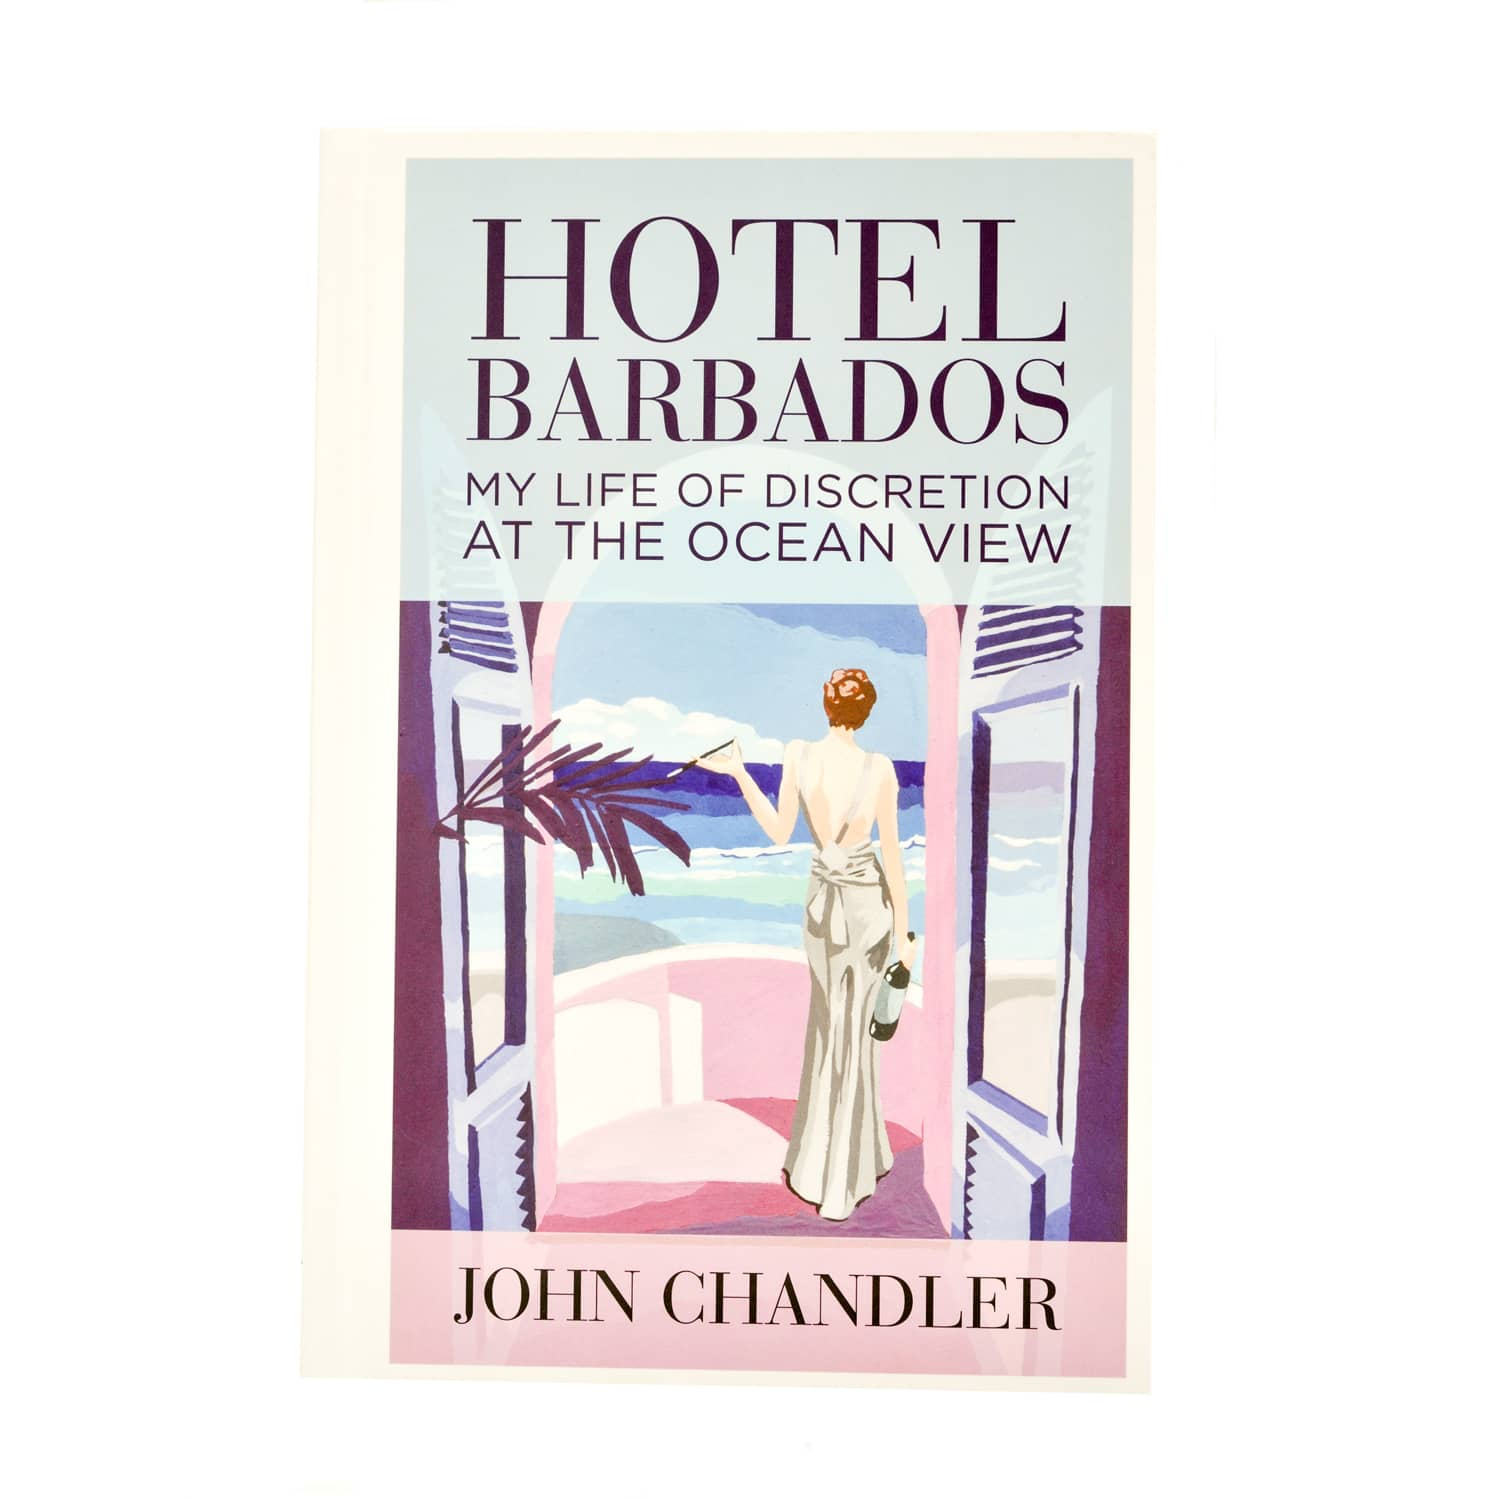 Hotel Barbados Book - My Life of Discretion at the Ocean View